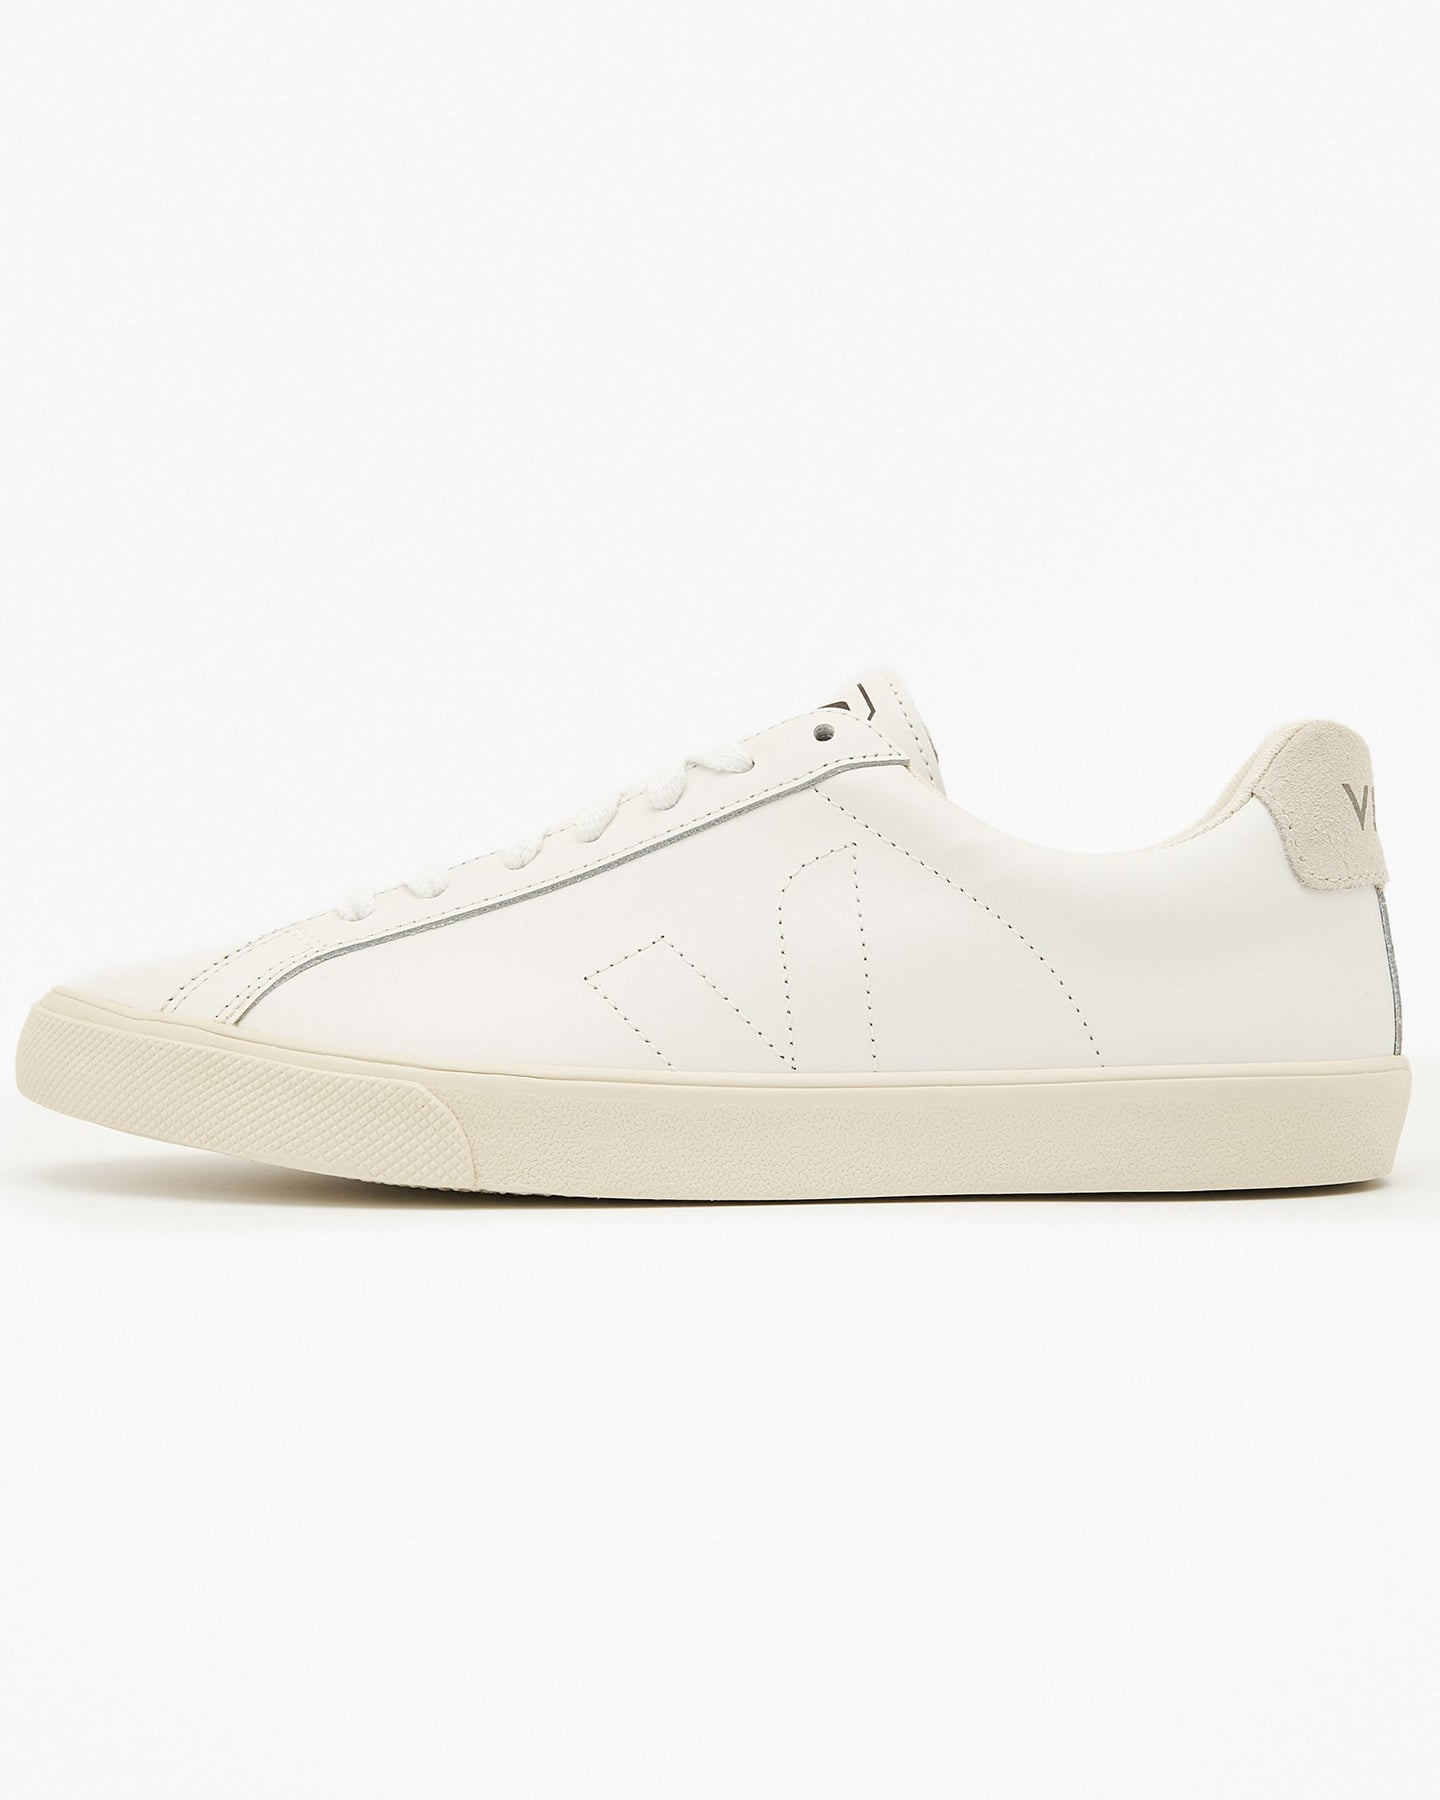 Veja Womens Esplar Leather Sneakers - Extra White UK 4 EAW20014 Veja Trainers